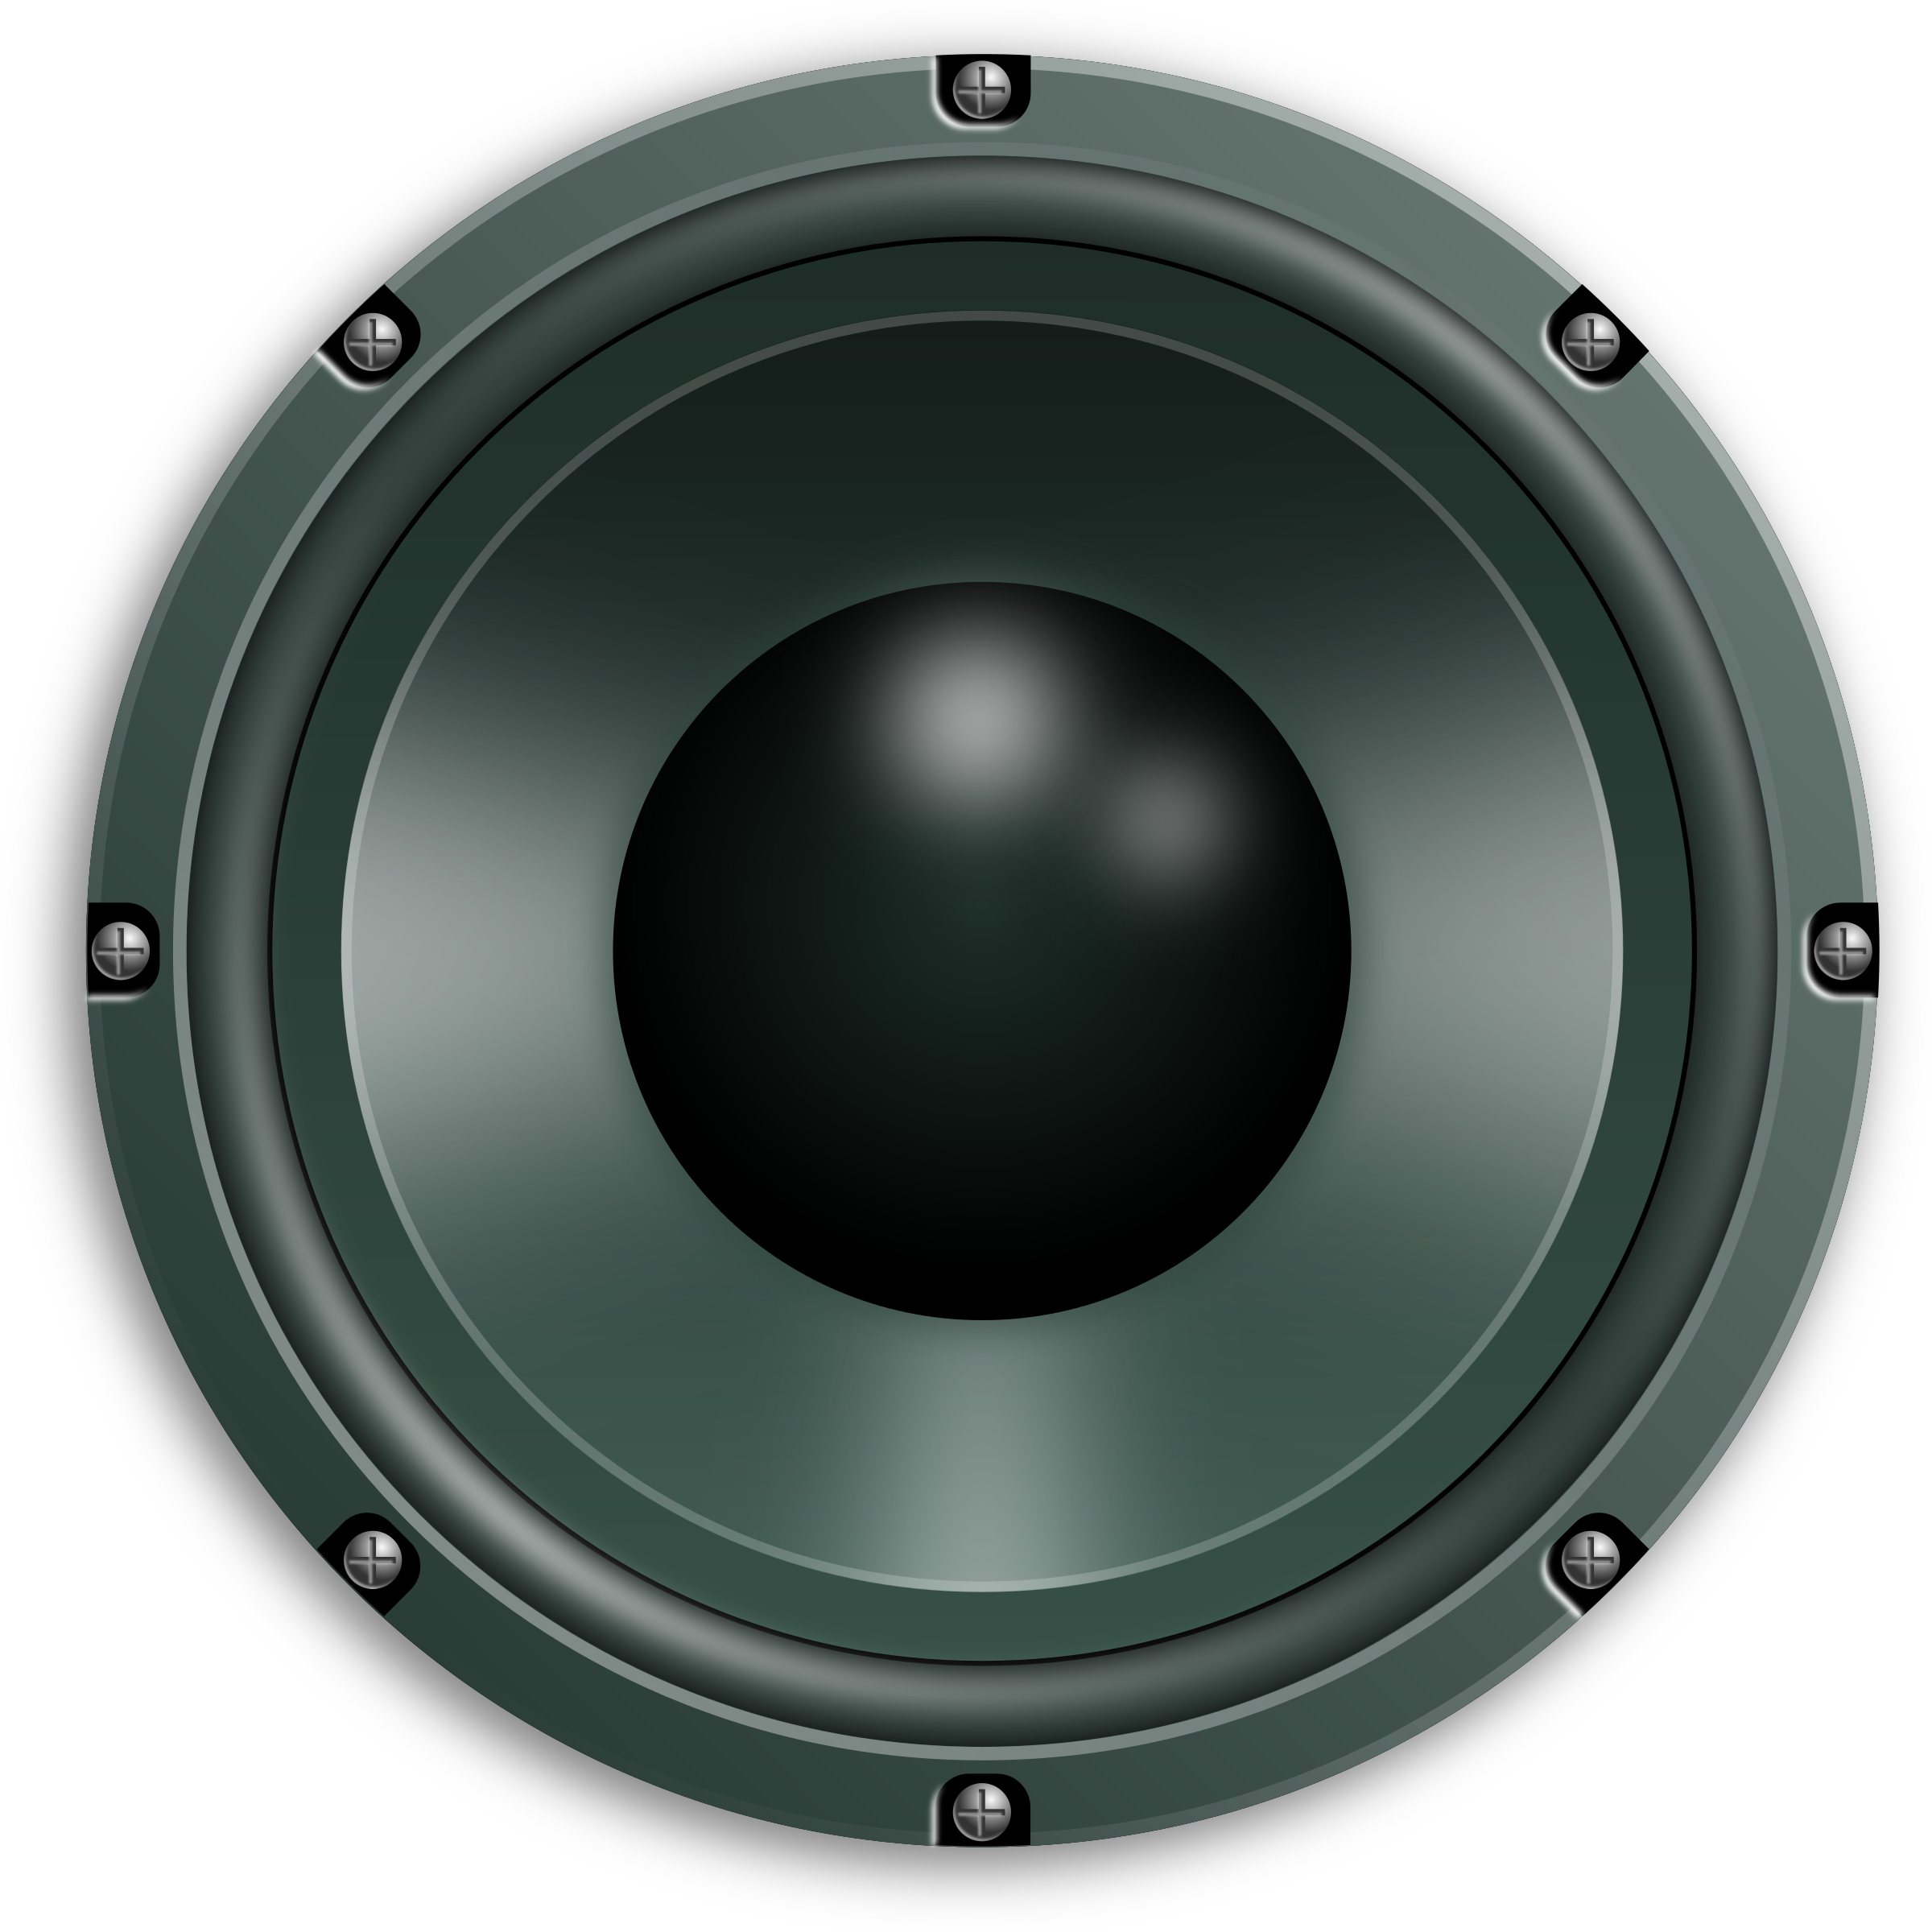 Speaker 3d png. Audio speakers free download